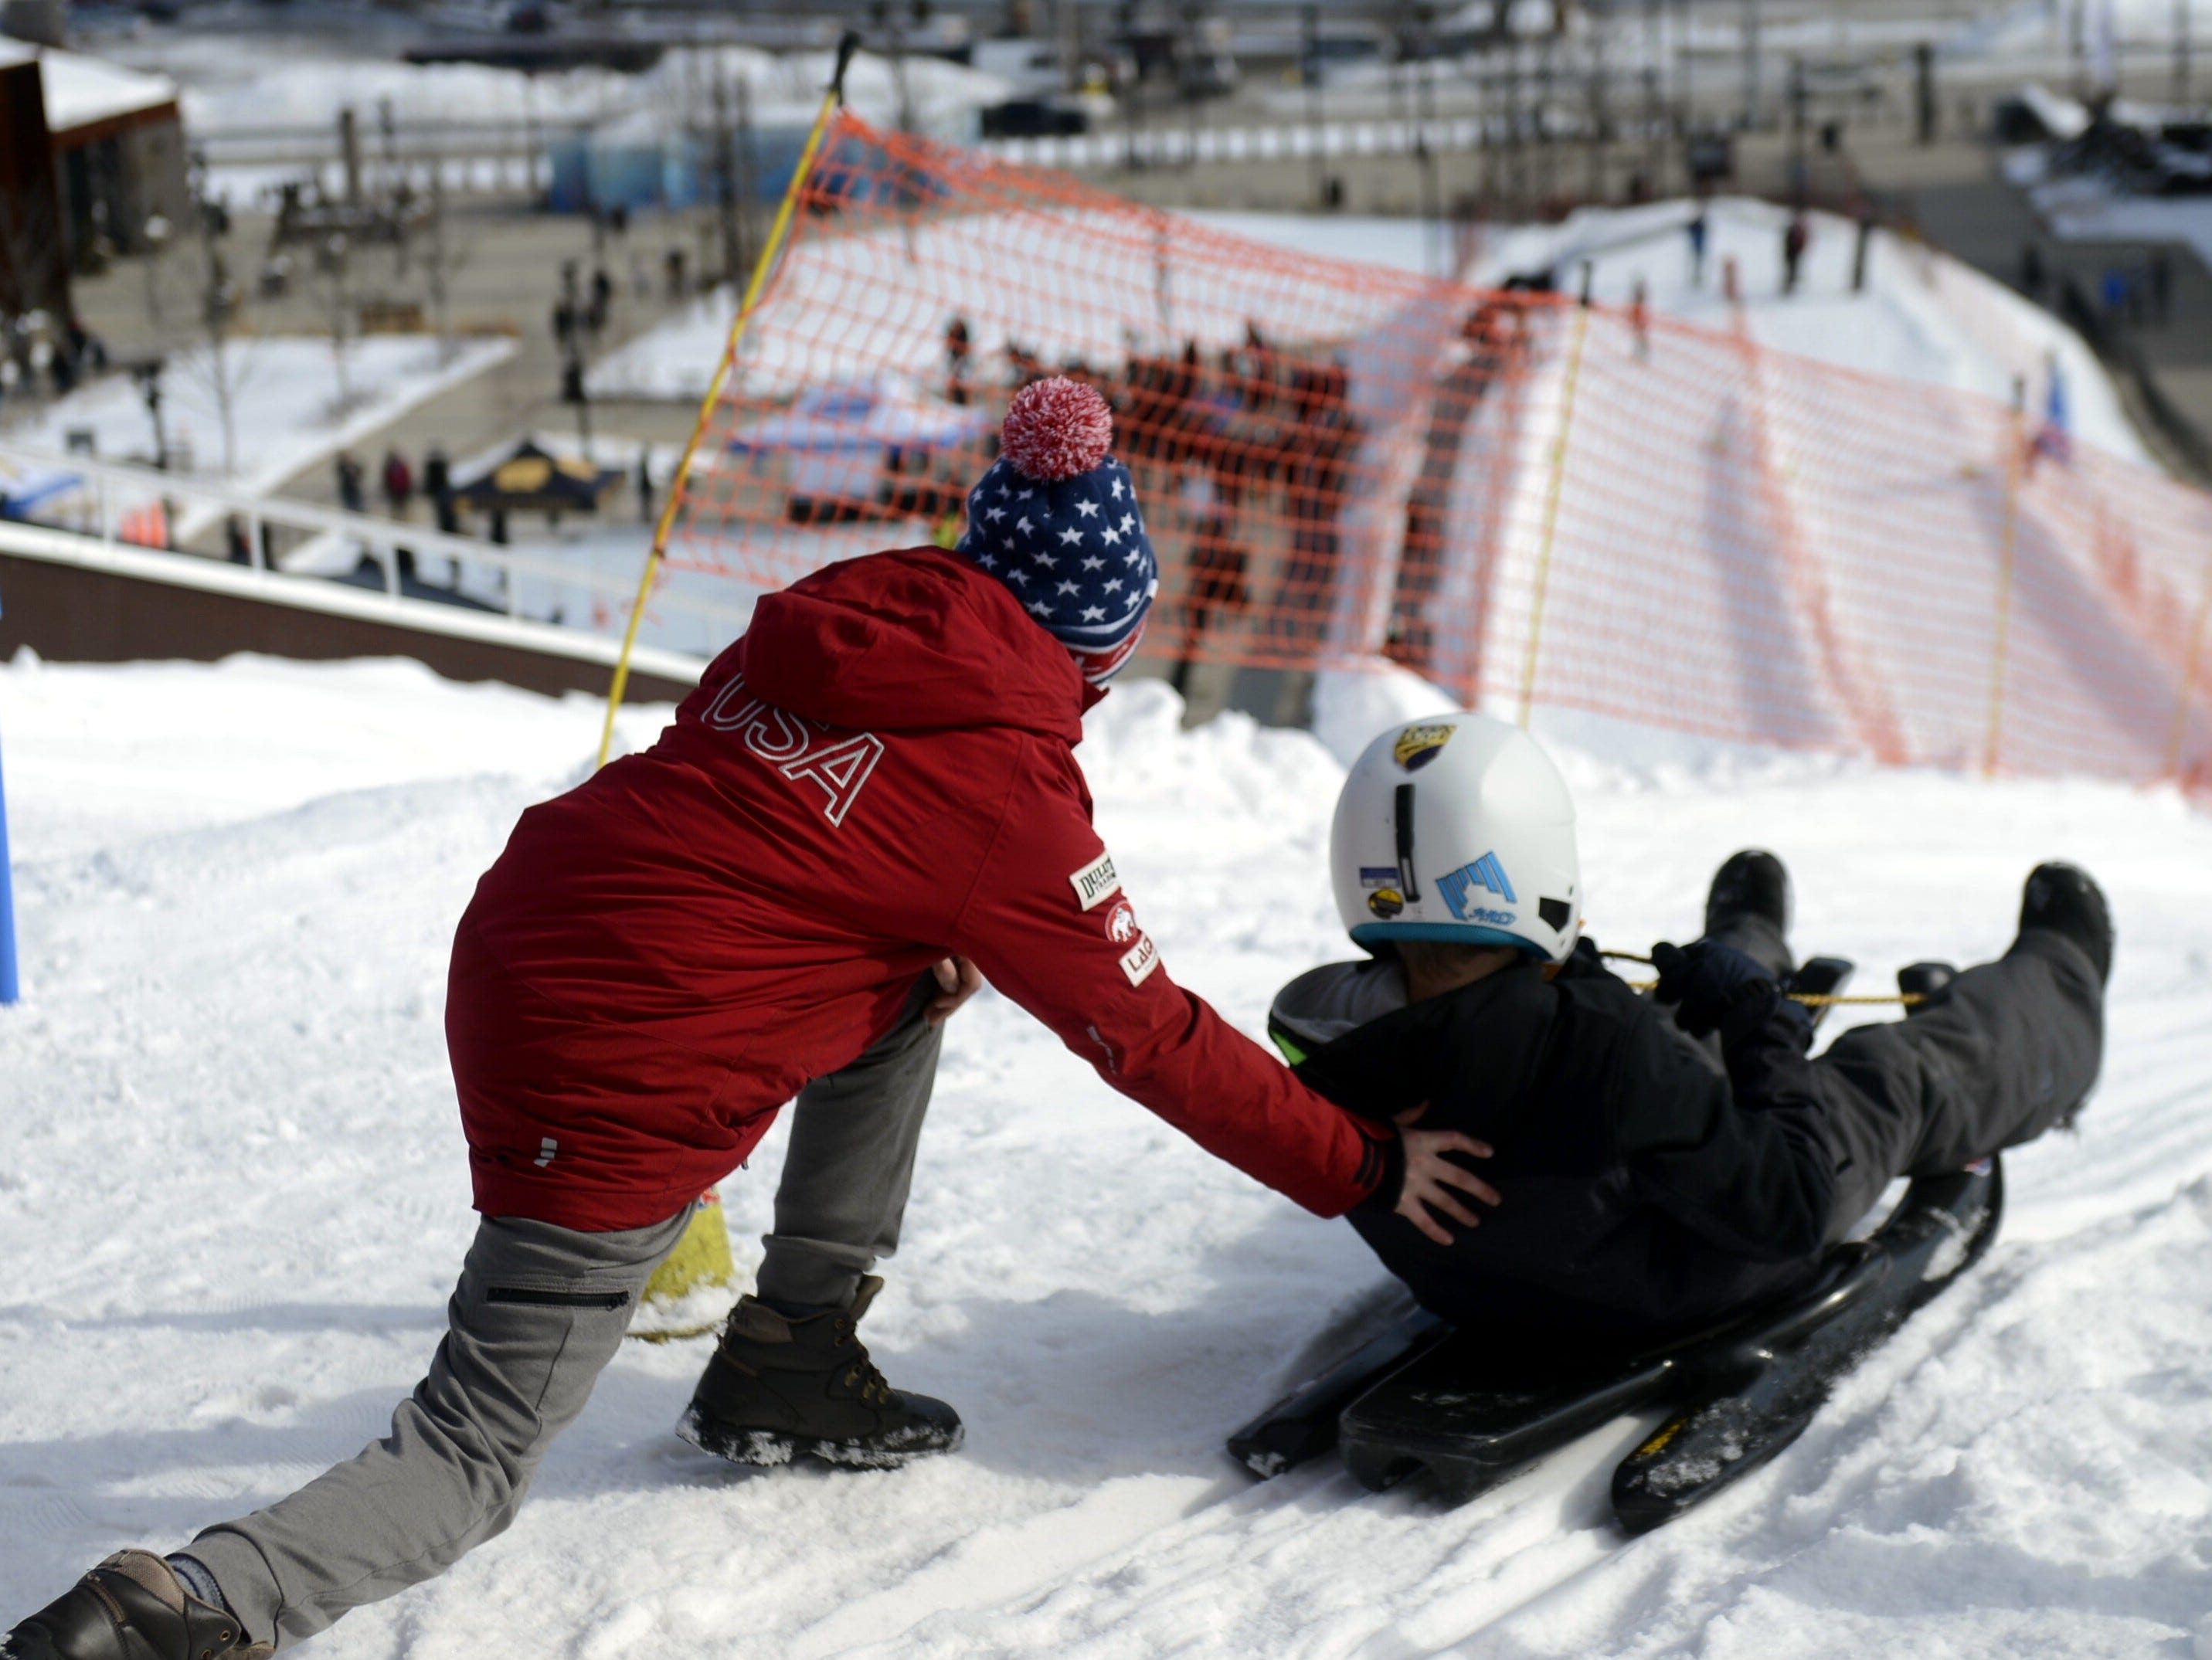 A luge rider gets a push from the top of Ariens Hill during the Titletown Winter Games on Saturday, Feb. 16, 2019.